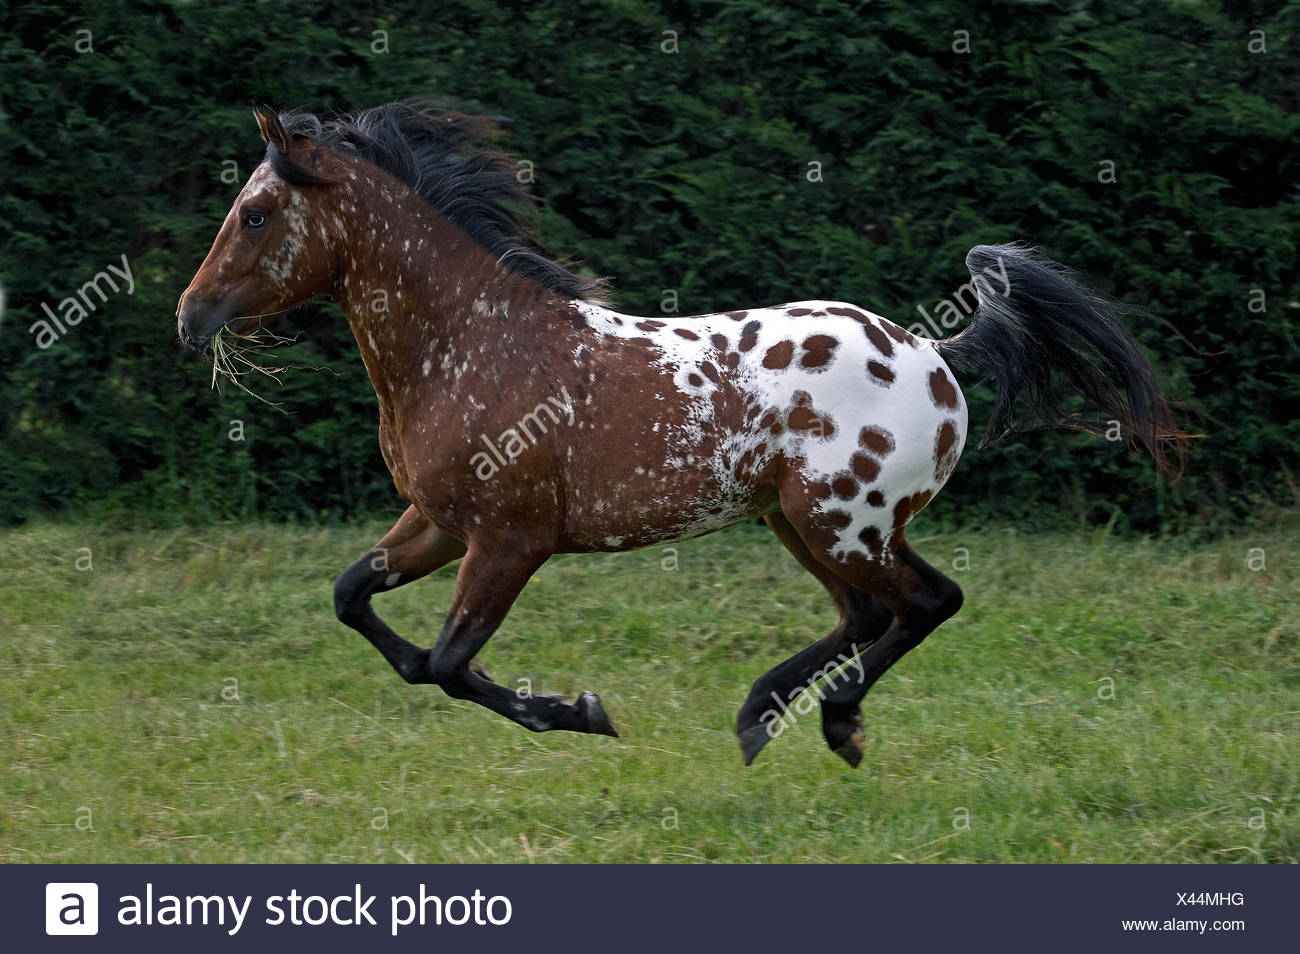 Appaloosa Horse, Adult Galloping through Meadow Stock Photo